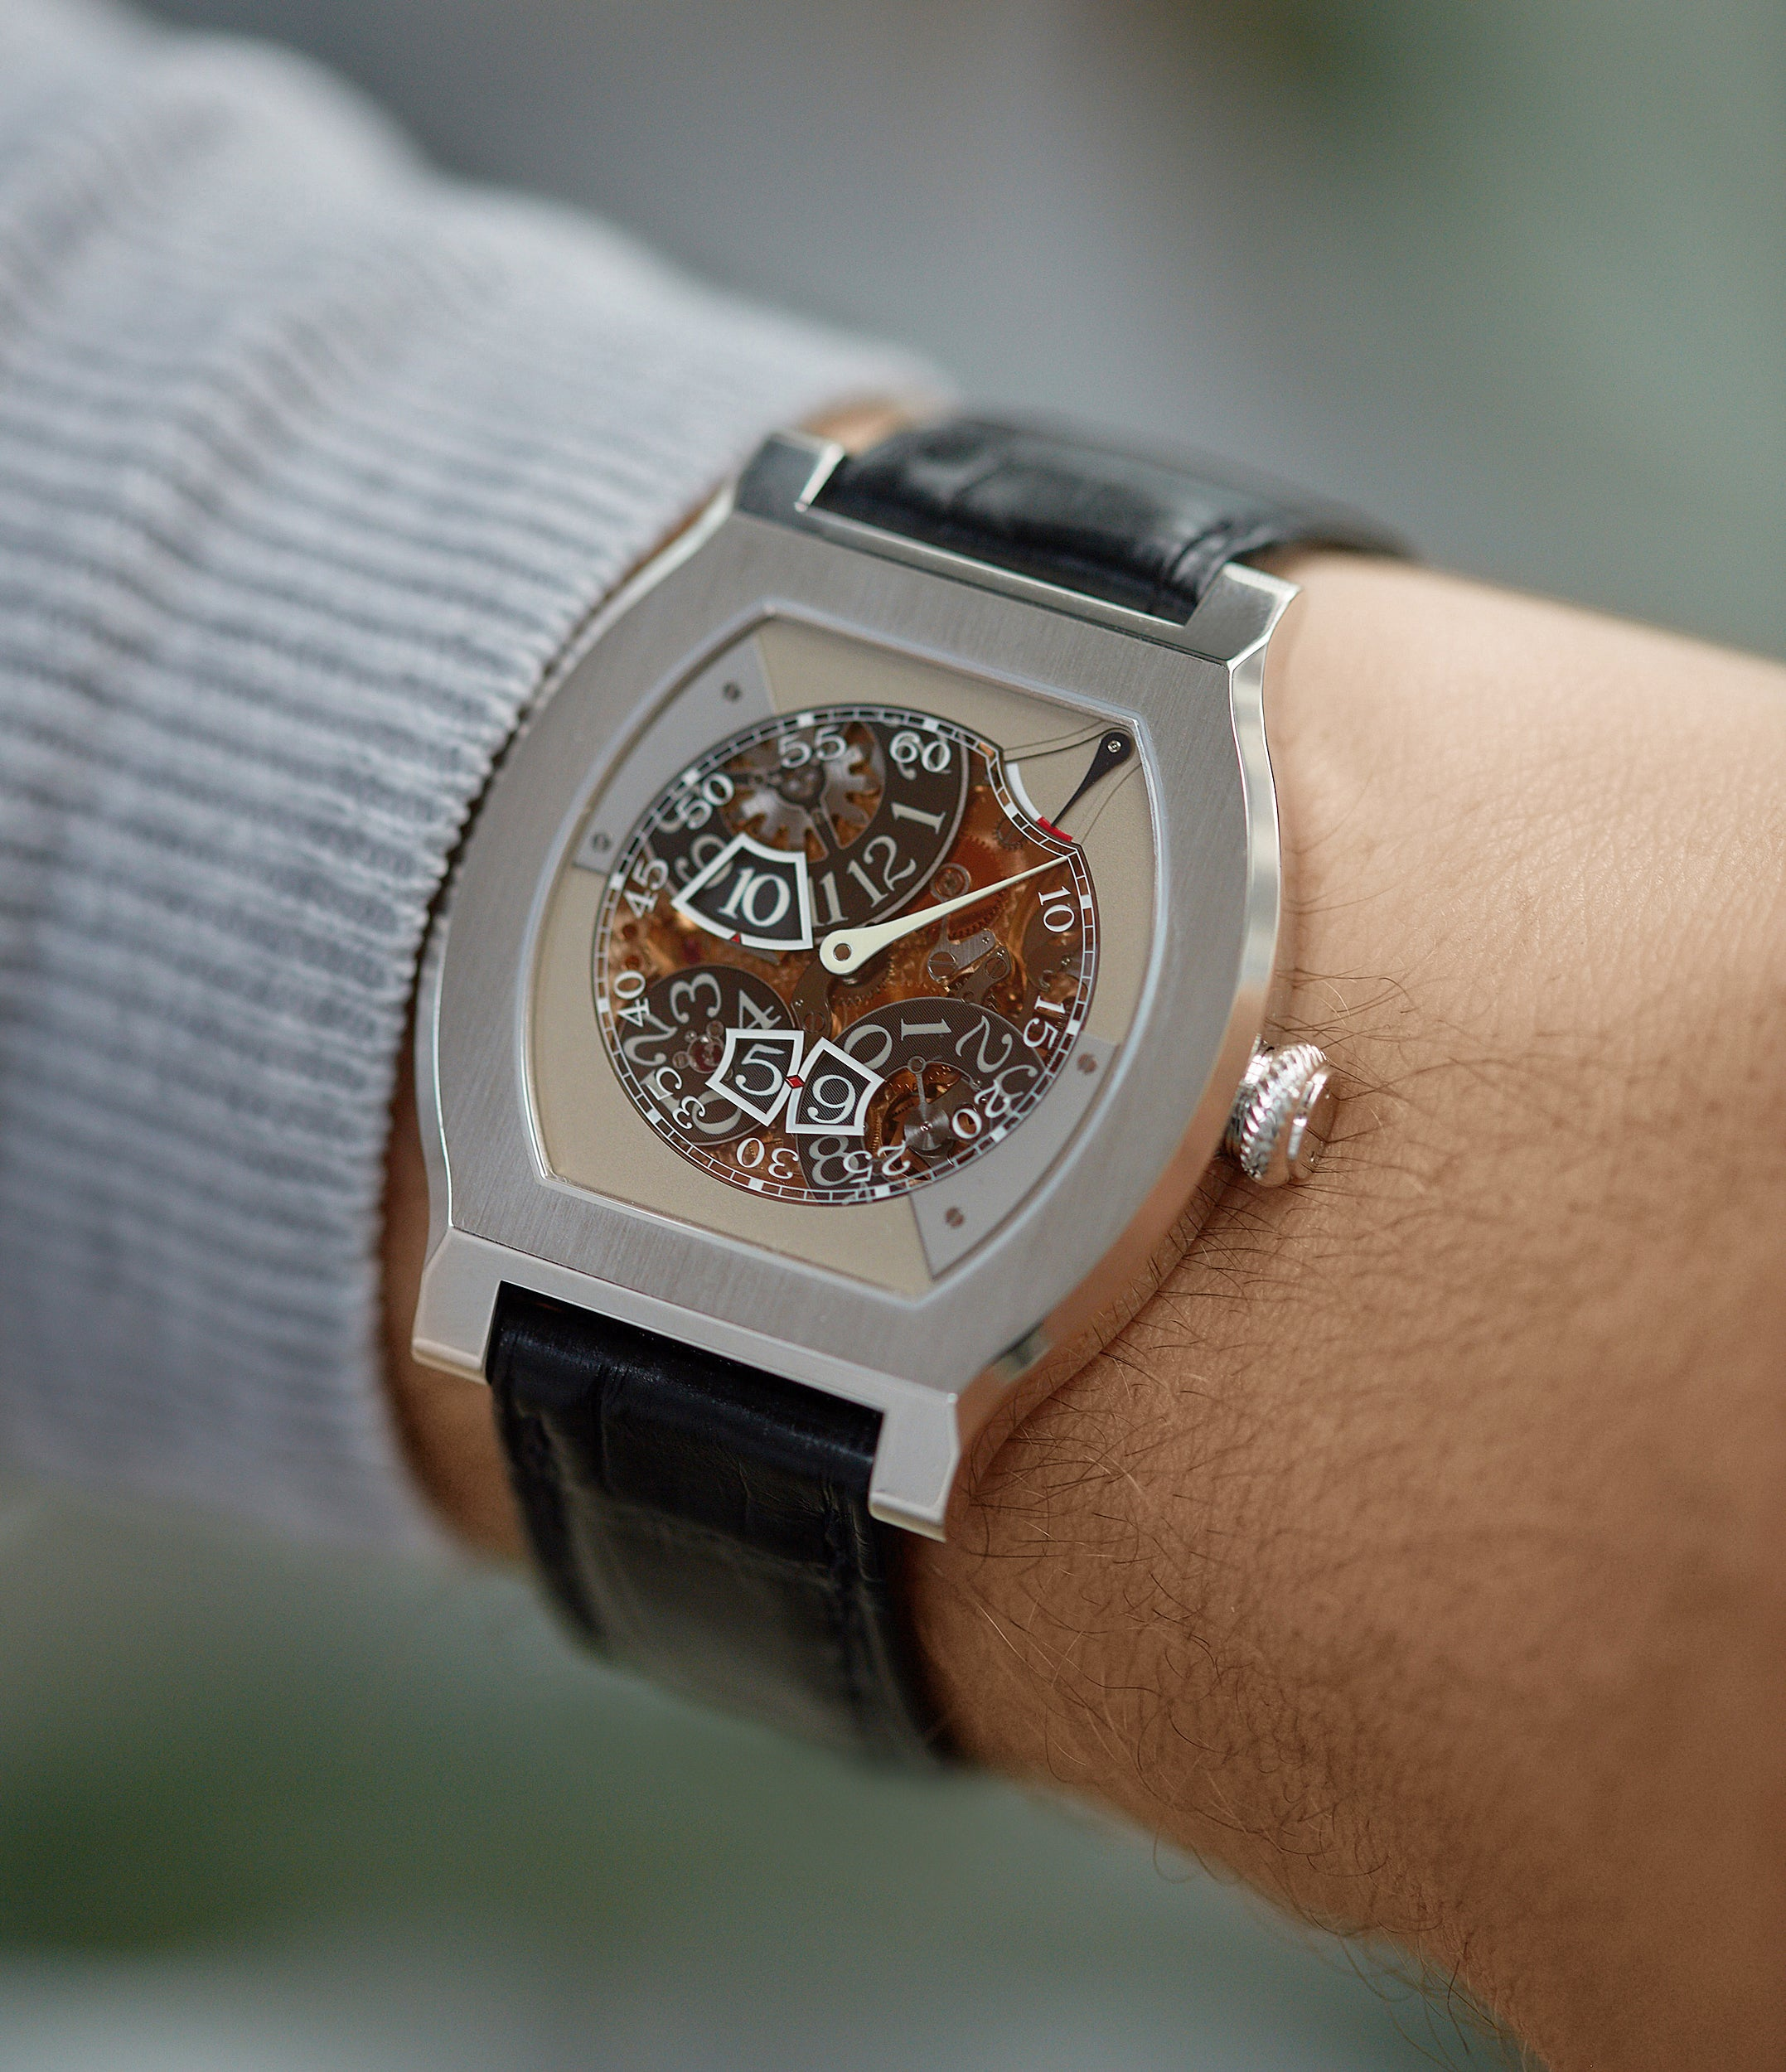 men's luxury rare wristwatch F. P. Journe Vagabondage 3 jumping hours seconds Limited edition of 69 platinum rare watch from 2018 for sale online at A Collected Man London UK specialist of independent watchmakers